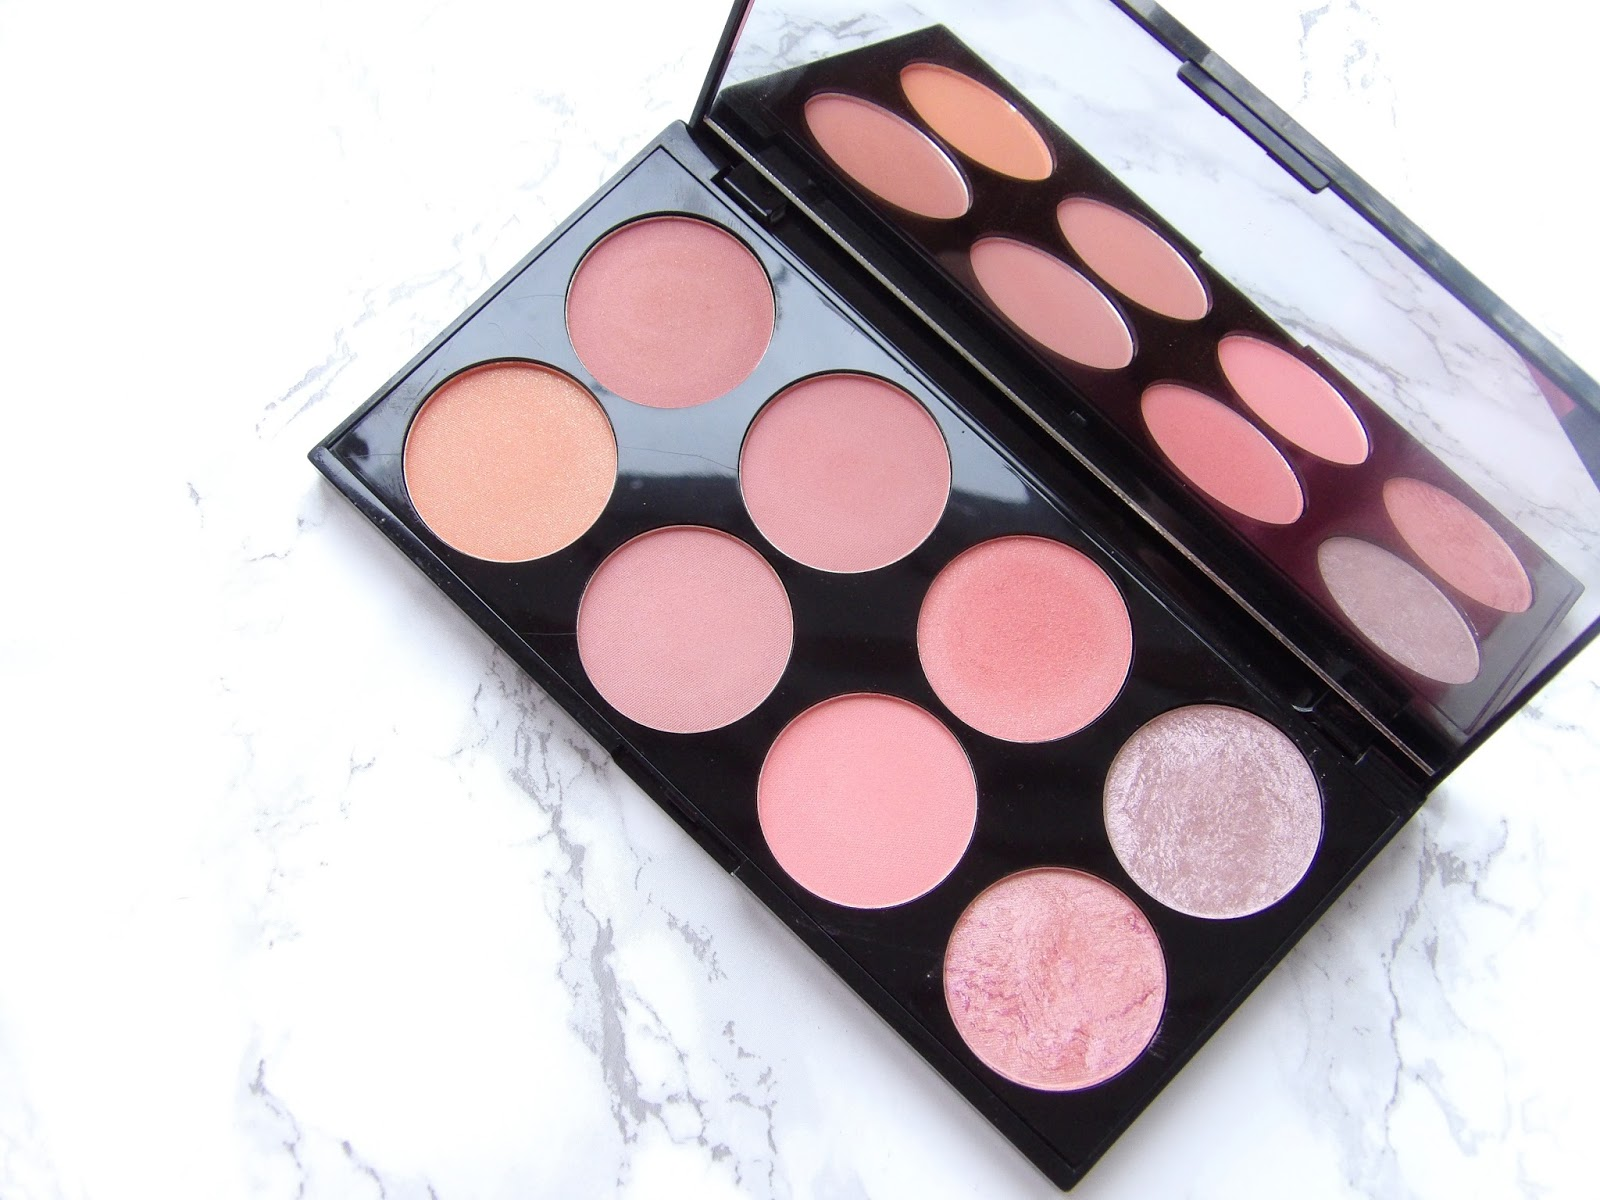 MAKEUP REVOLUTION ULTRA BLUSH PALETTE | REVIEW + SWATCHES